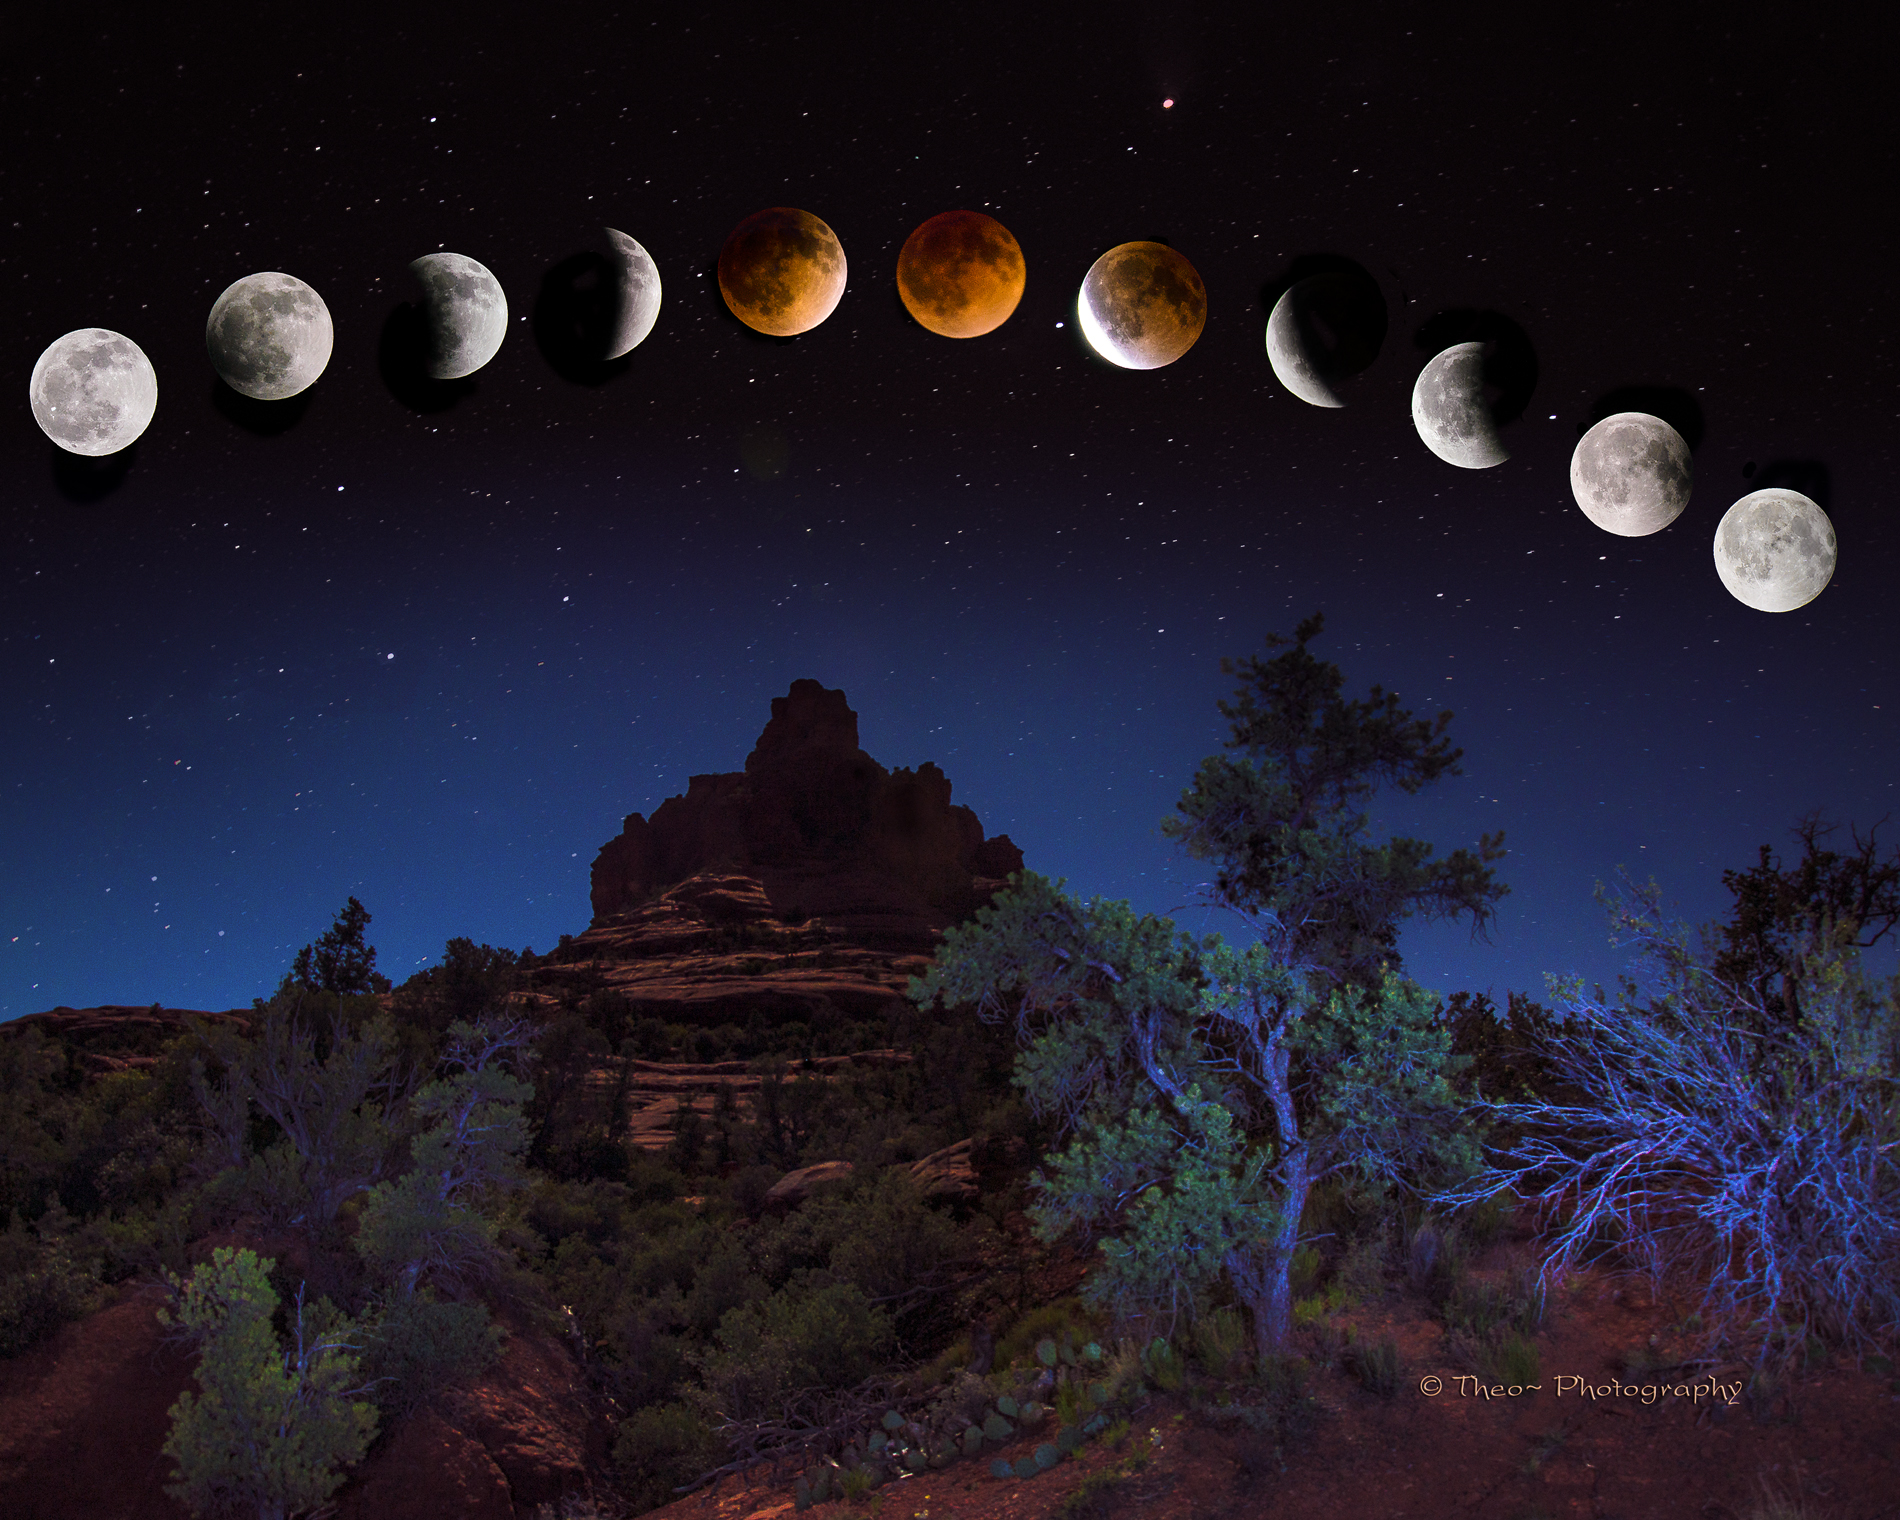 _Lunar EclipseTDA0073_1031 Sky Bell composite w eclipsed moon 4-15-14  8x10 R3